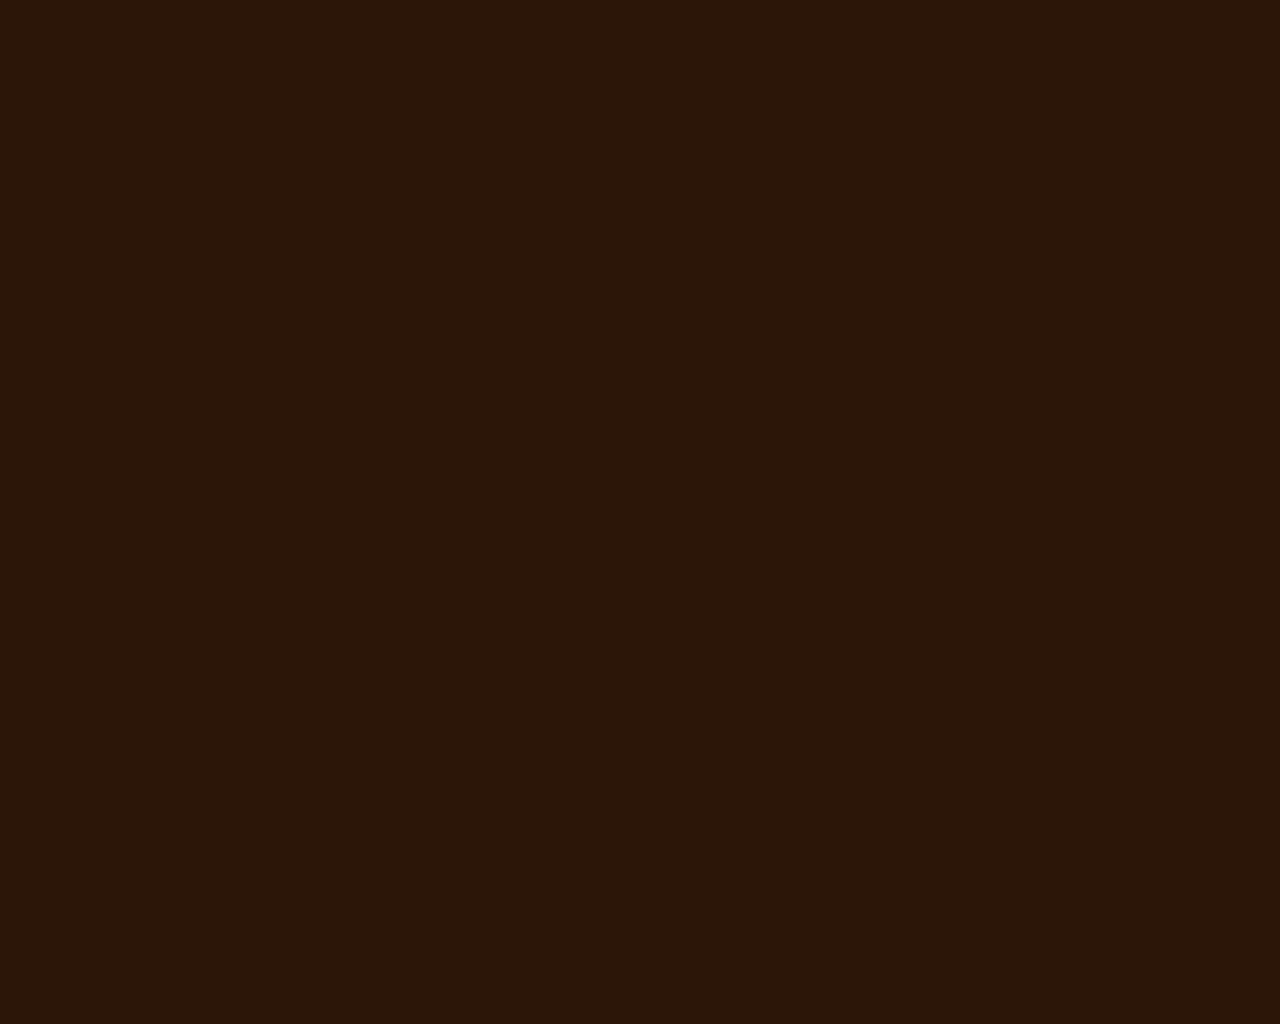 1280x1024 Zinnwaldite Brown Solid Color Background